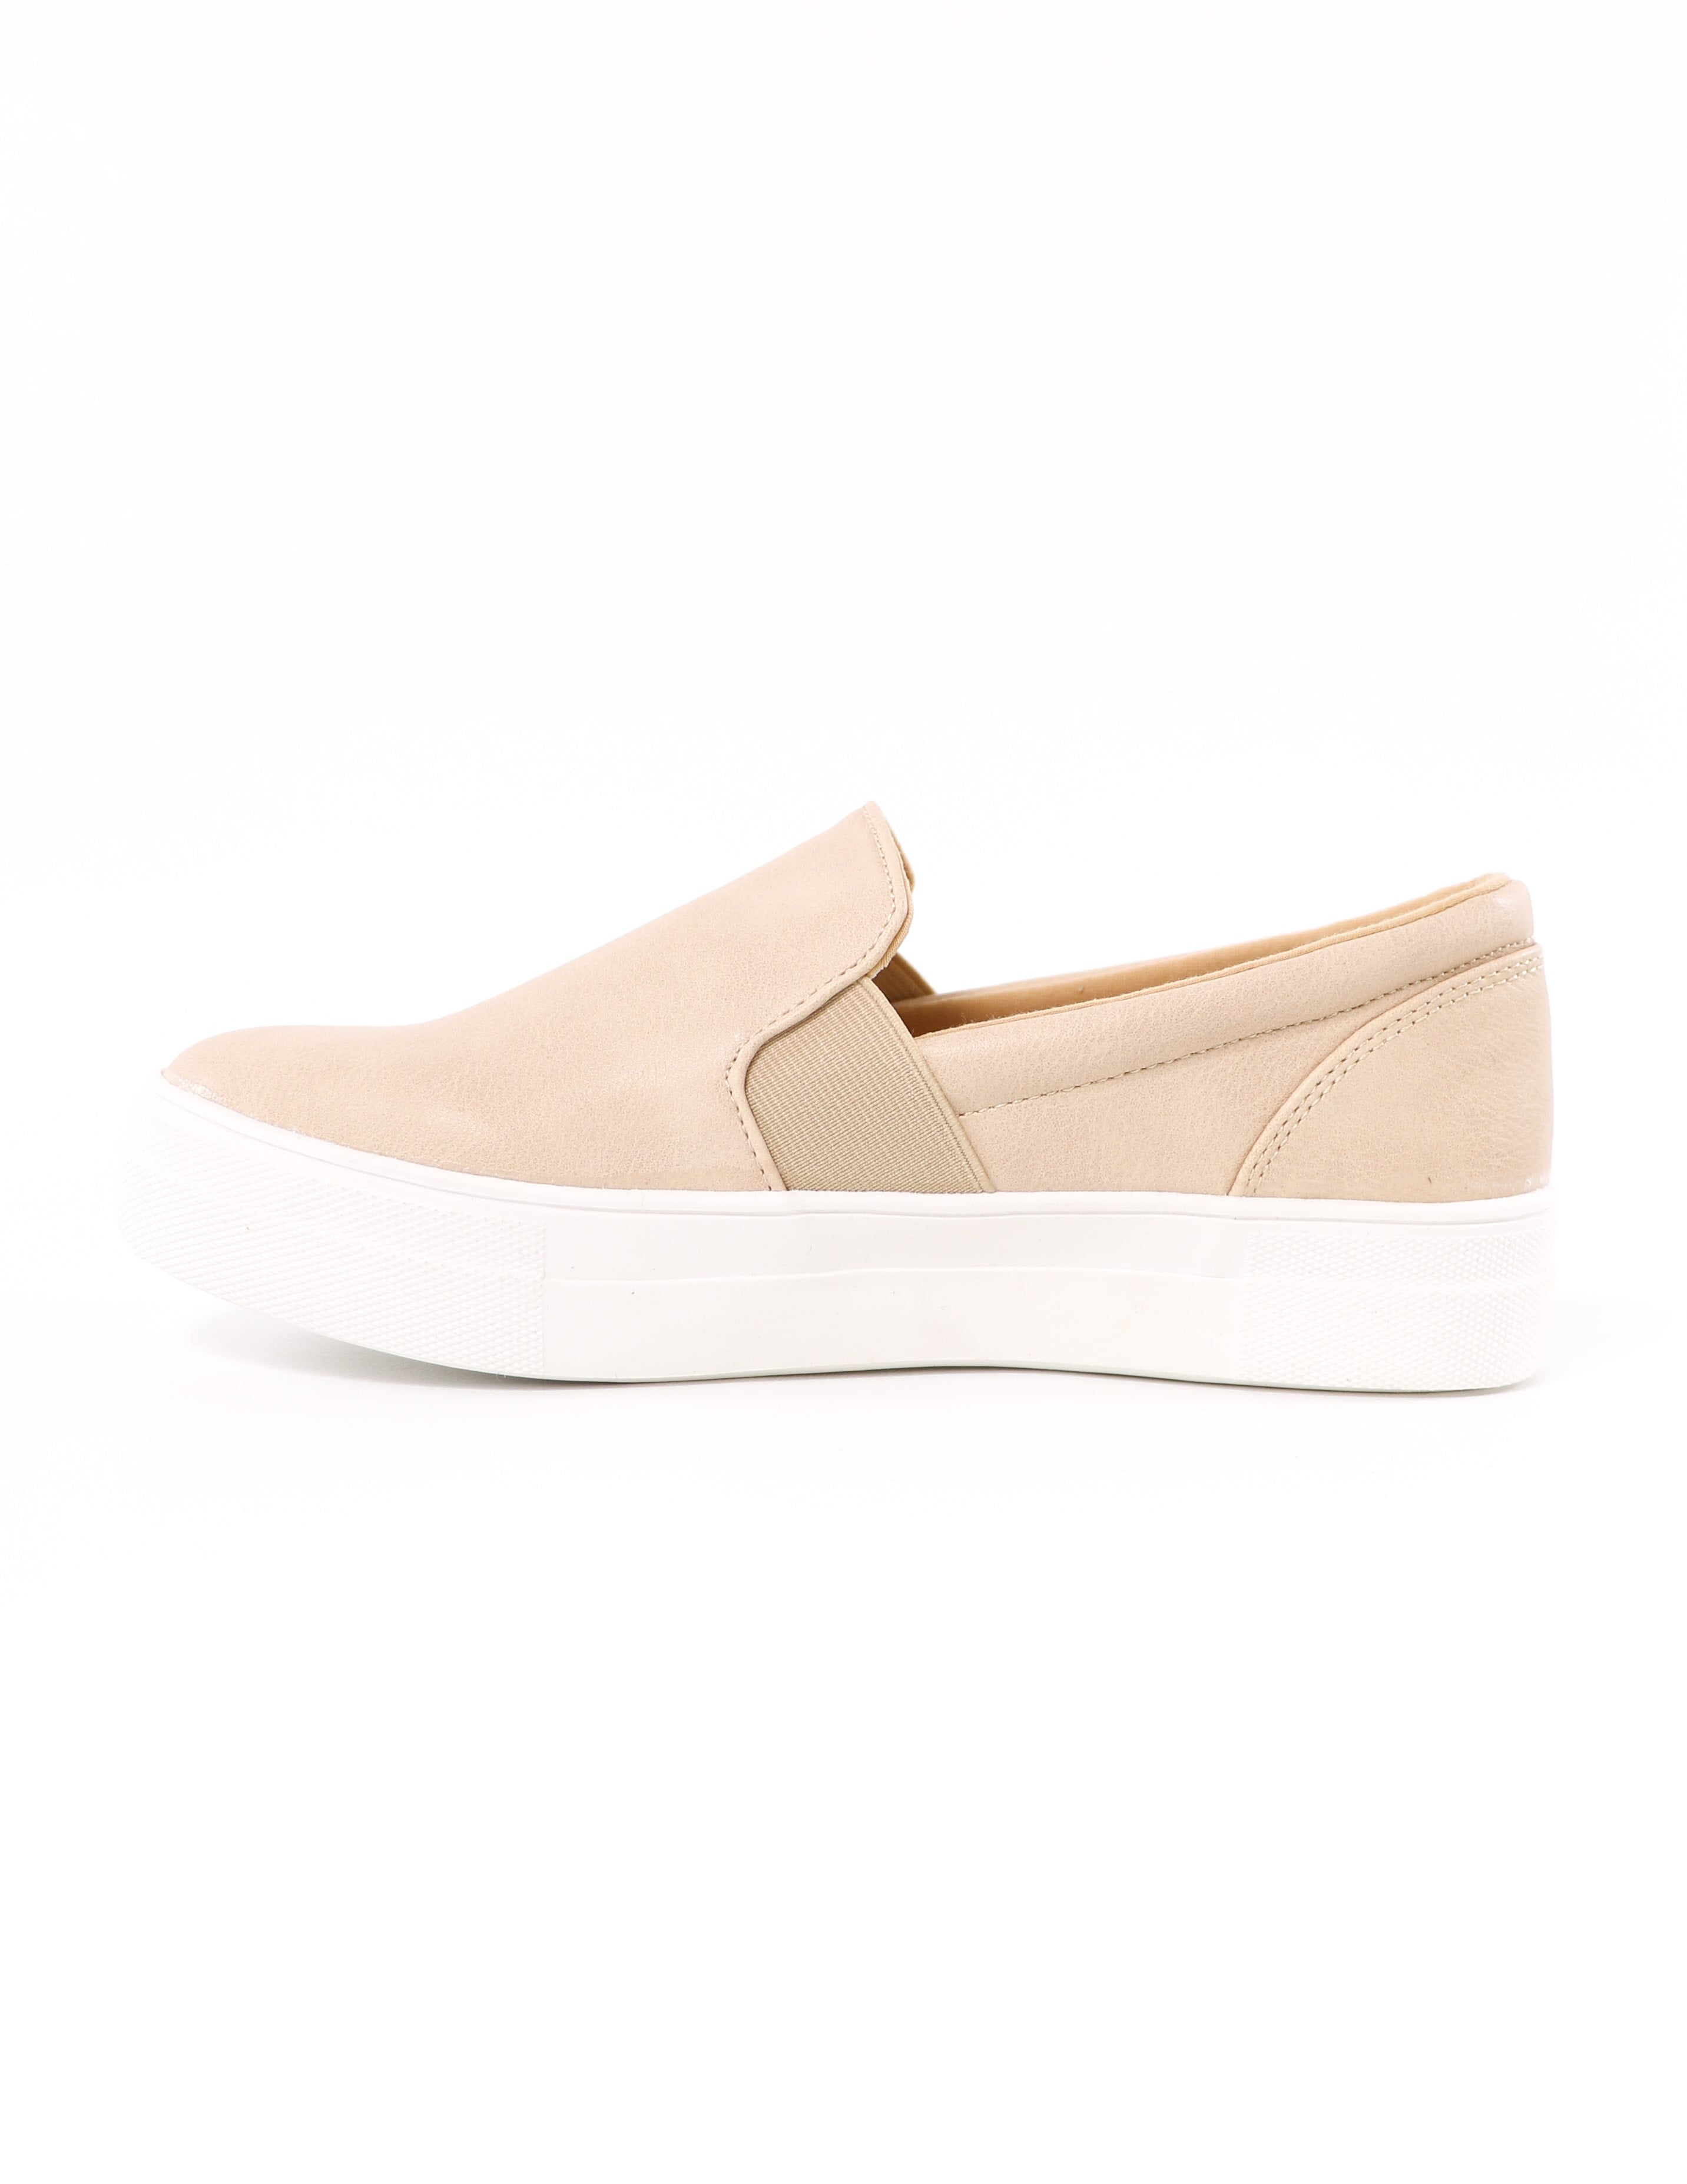 side of the elastic gore kickin' it sole-o slip on natural sneaker - elle bleu shoes